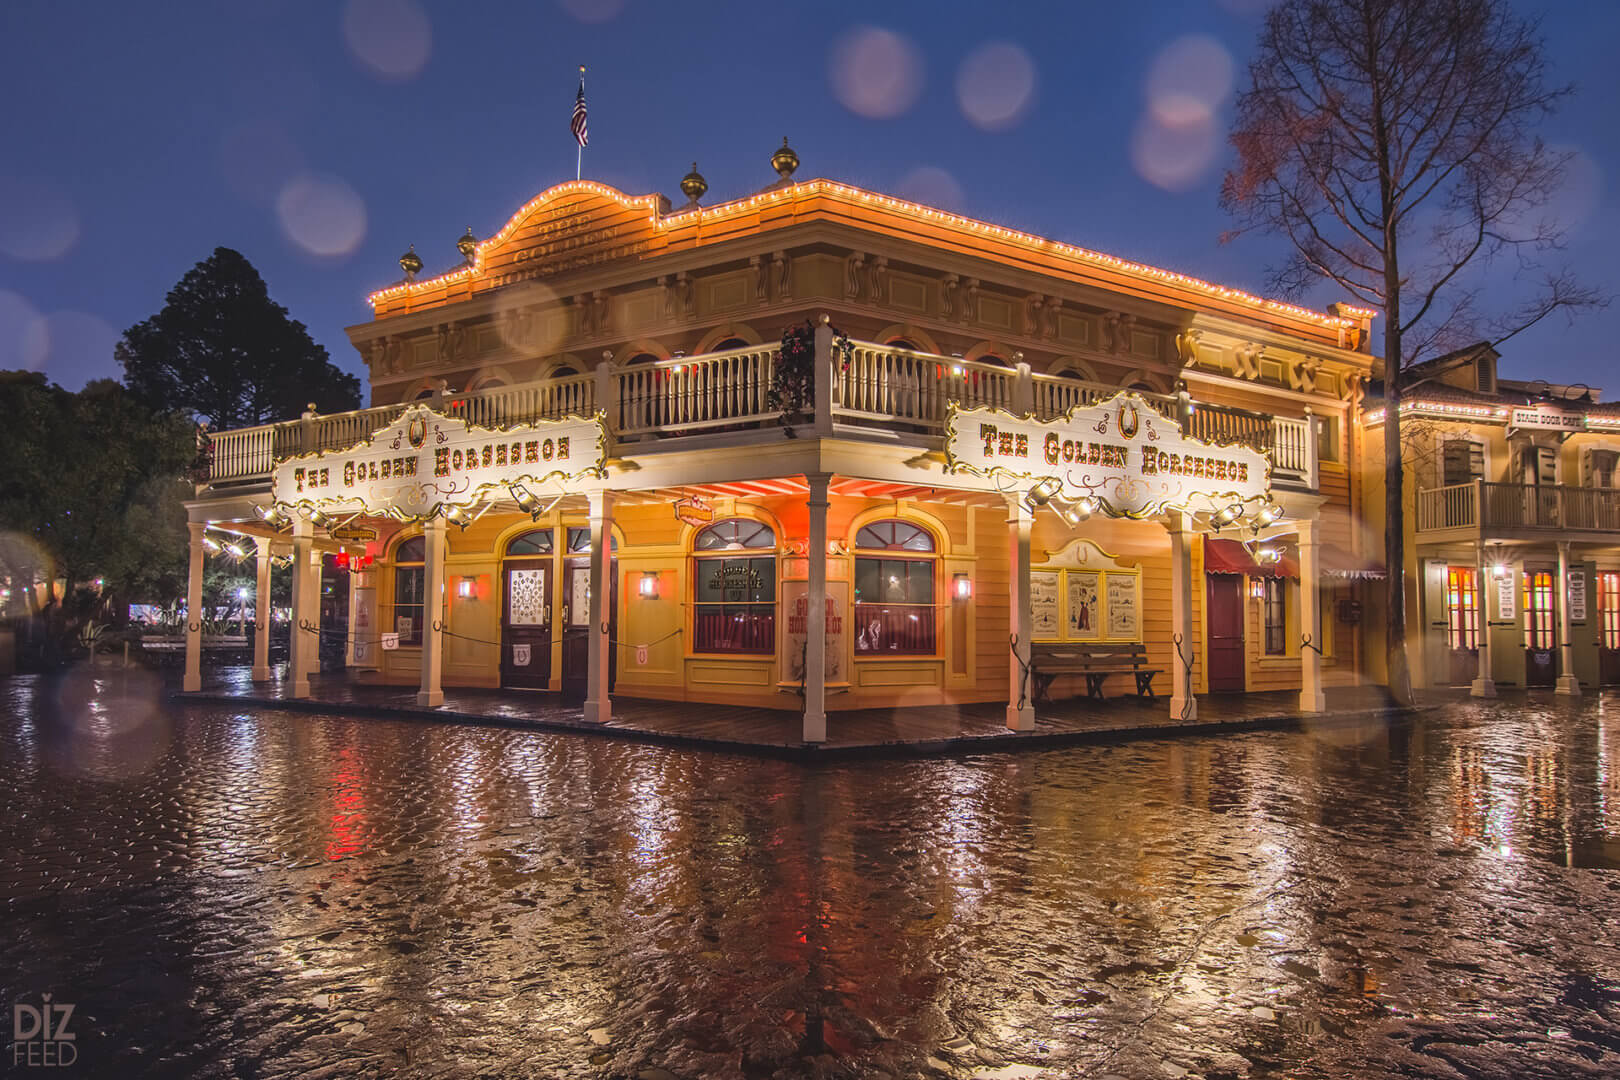 disneyland 7p A dining experience at disneyland's new 21 royal restaurant will certainly make you feel fancy — though it'll also cost you a pretty penny  7p tracking florence: preparing for the storm .